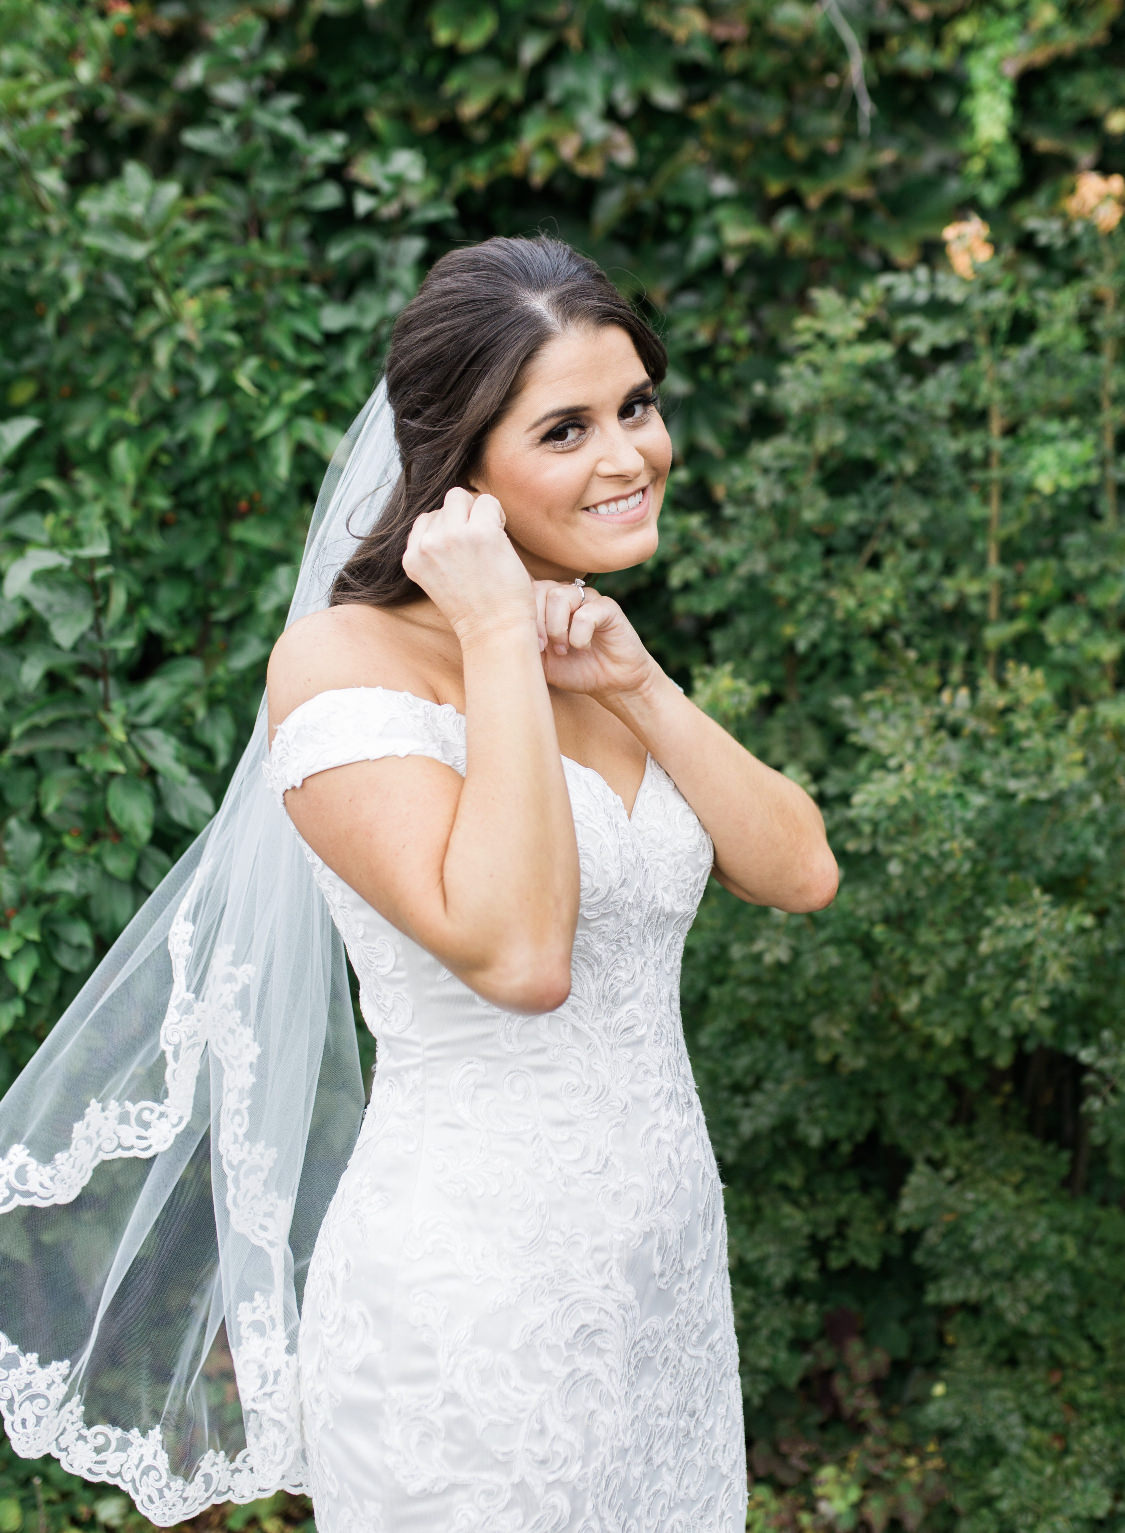 lace fingertip length wedding veil in half up half down hair